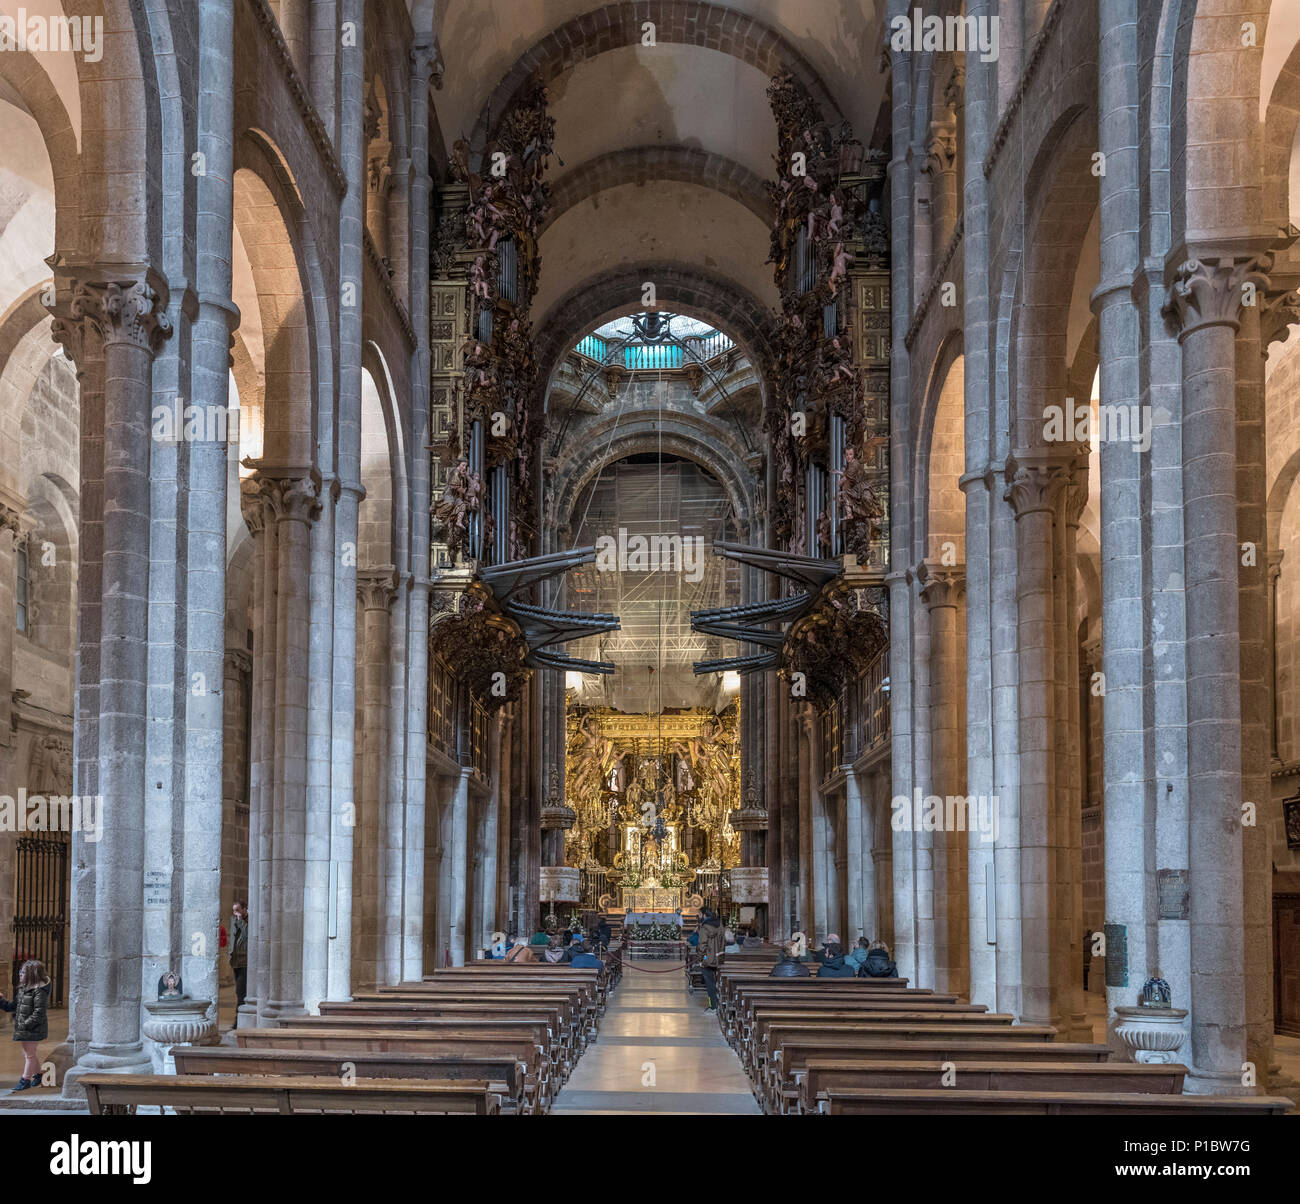 Santiago Cathedral. Interior of the Cathedral of Santiago de Compostela, Santiago de Compostela, Galicia, Spain Stock Photo